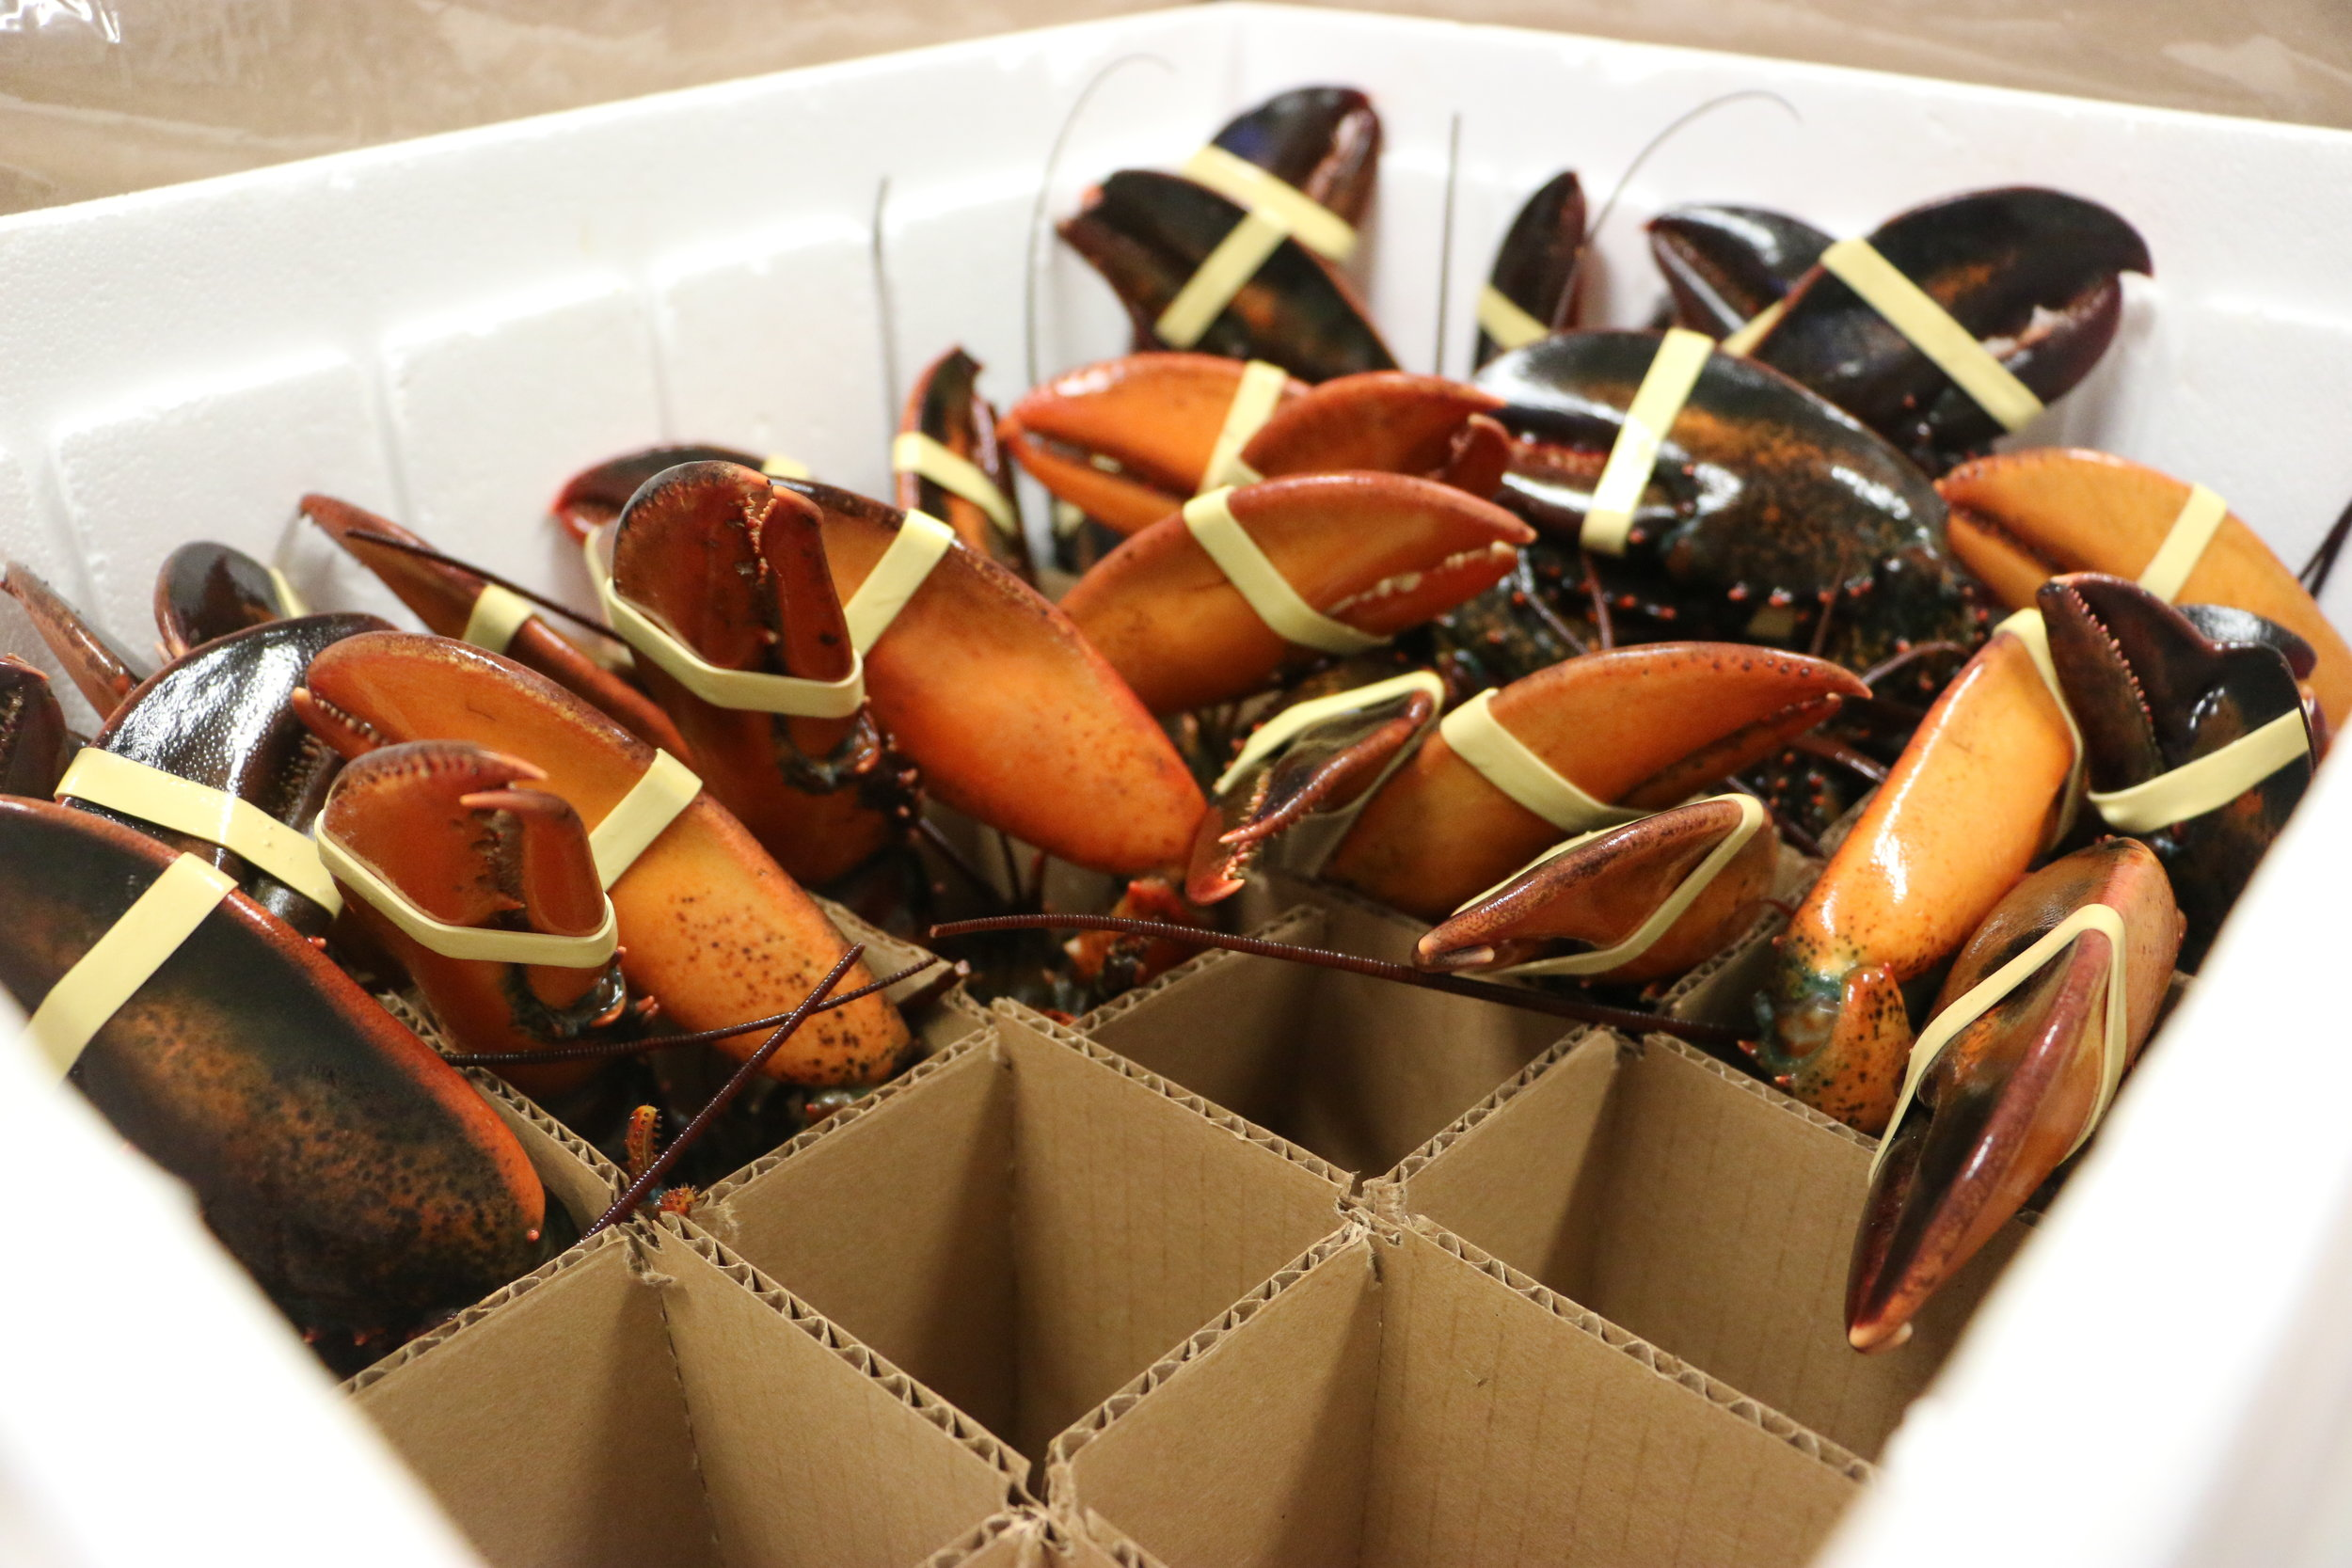 Live lobster shipped to grocery and retail stores and restaurants nationwide, by Ready Seafood, Portland, Maine